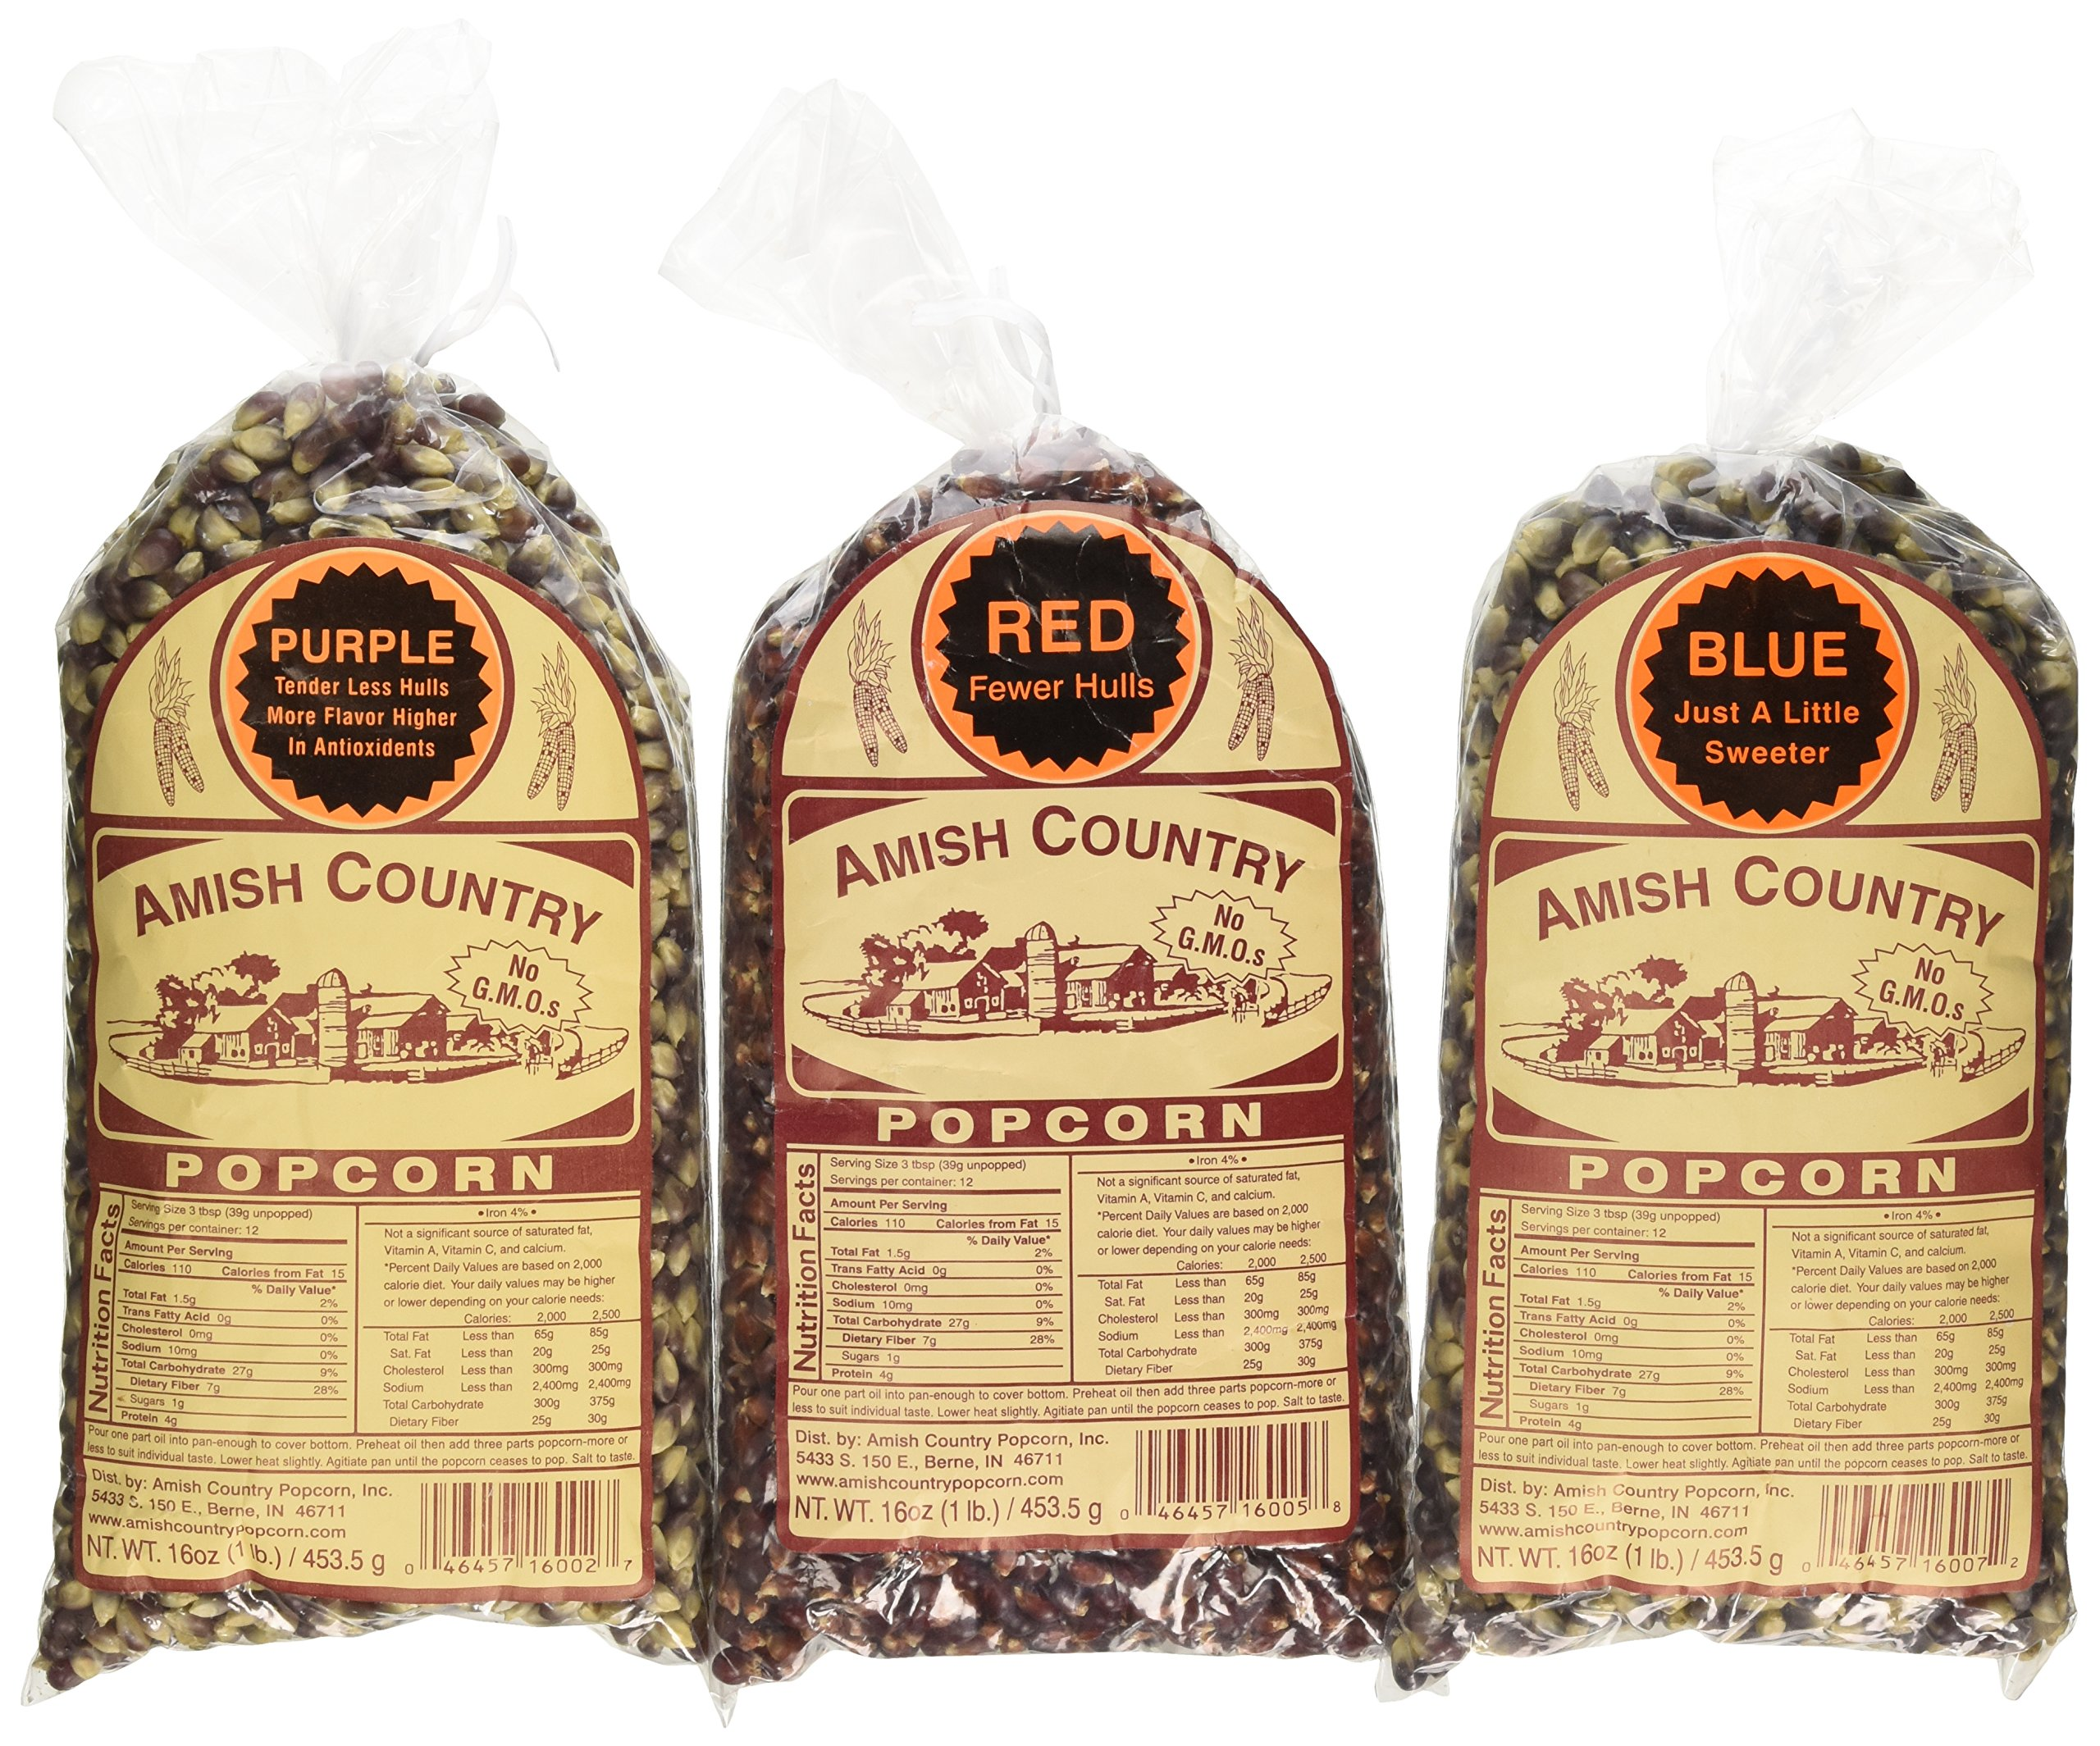 Amish Country Popcorn - 3 (1 lb. Bag Variety) Purple Popcorn, Blue Popcorn and Red Popcorn - with Recipe Guide